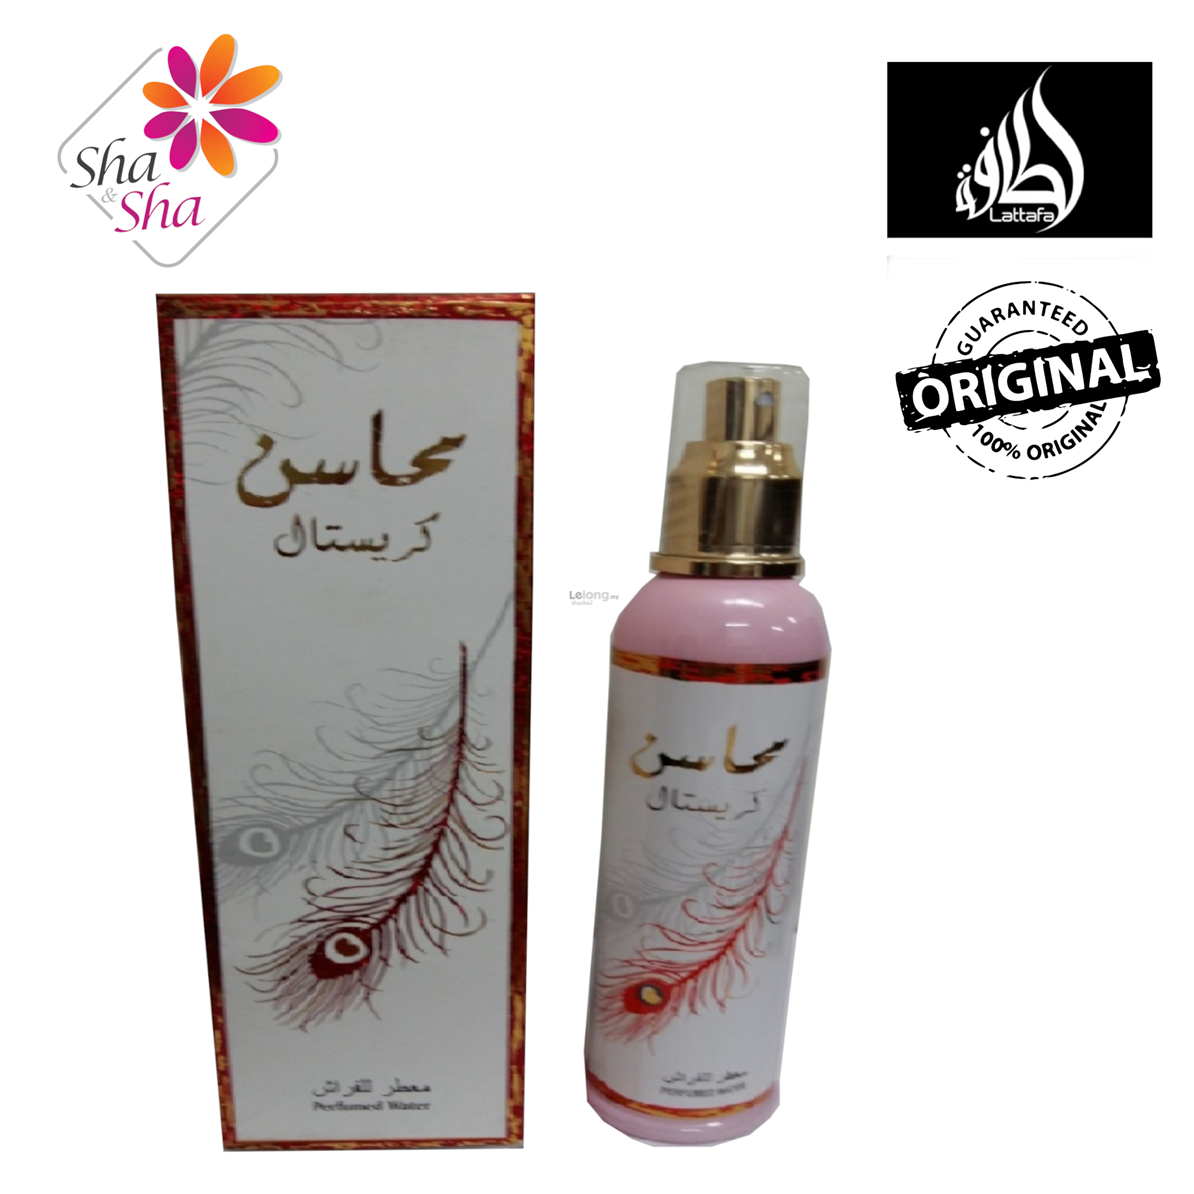 Lattafa Water perfume 250ml - Non Alcohol .....MAHASIN CRYSTAL